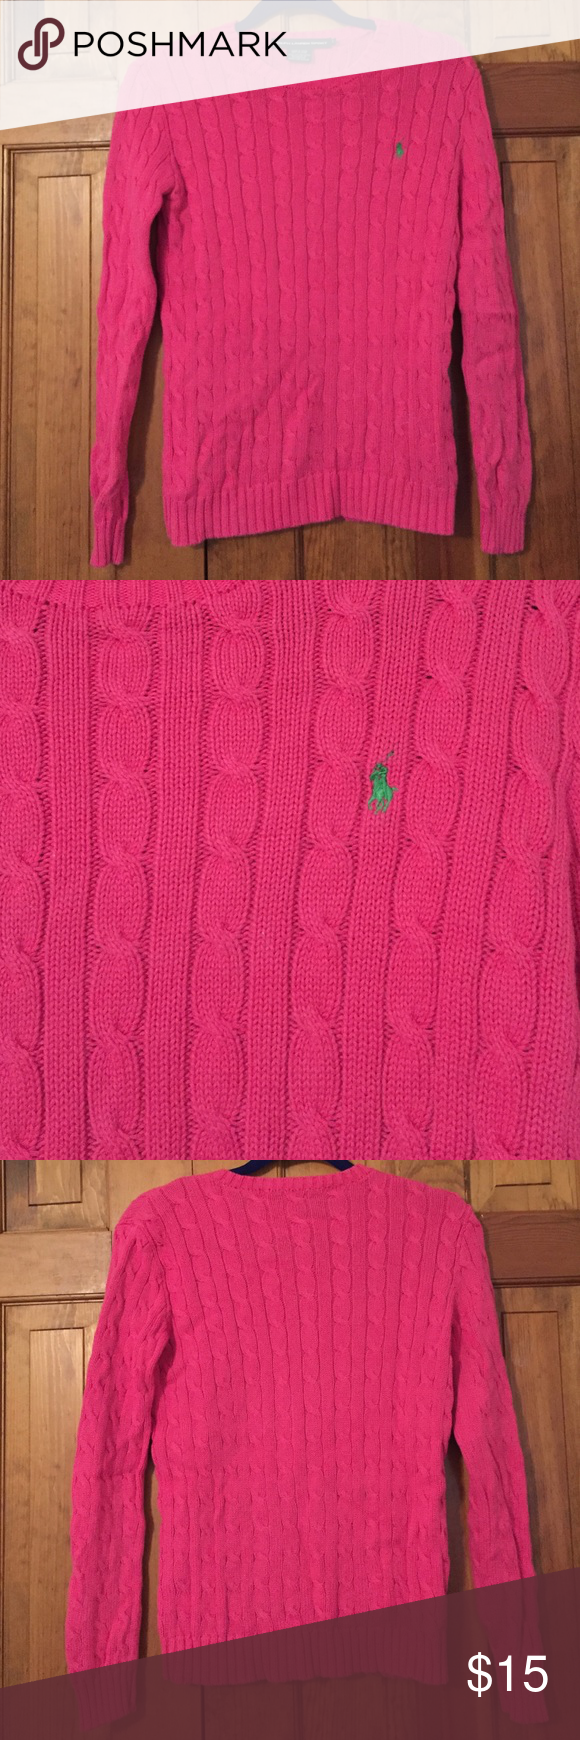 Ralph Lauren Cable Knit Sweater Like new, Ralph Lauren Cable Knit Sweater Ralph Lauren Sweaters Crew & Scoop Necks